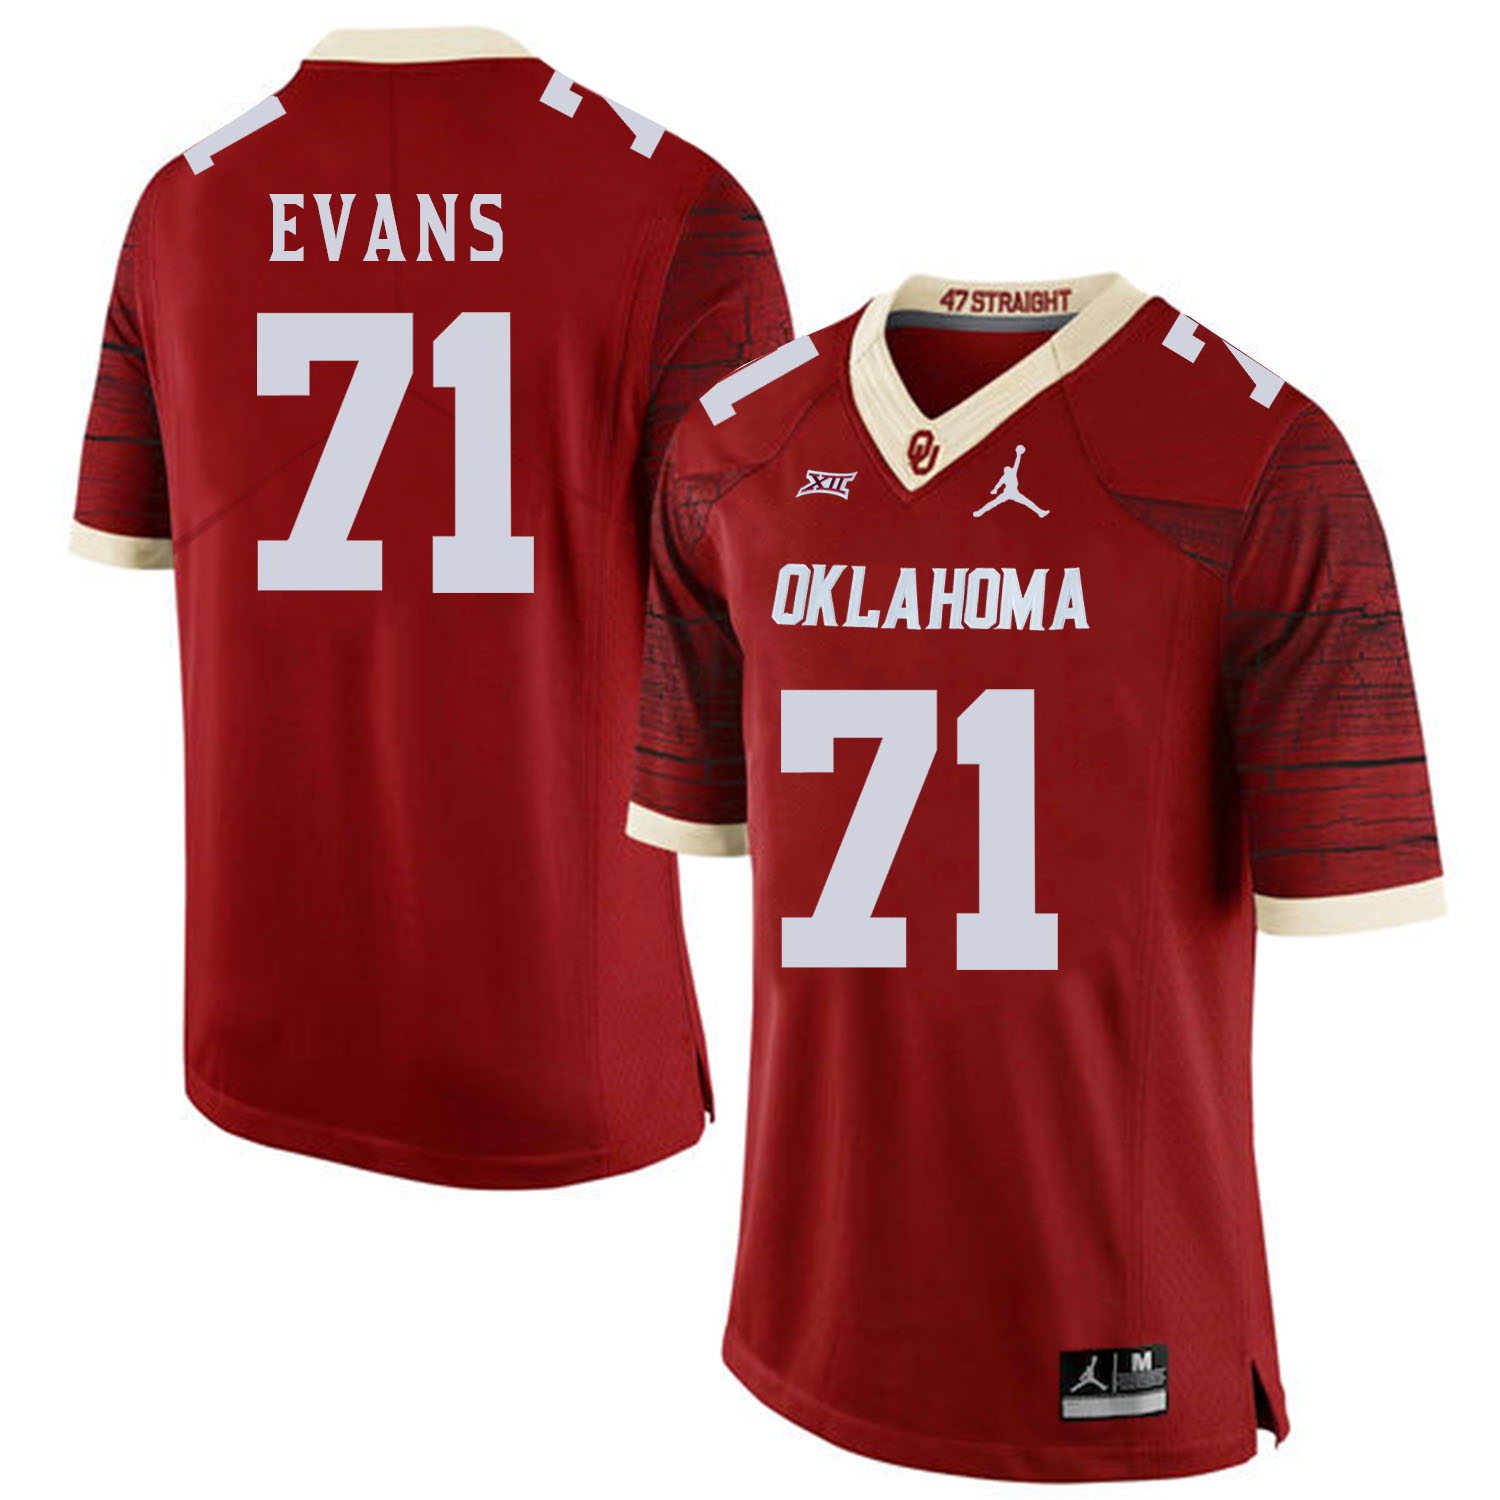 Oklahoma Sooners 71 Bobby Evans Red 47 Game Winning Streak College Football Jersey